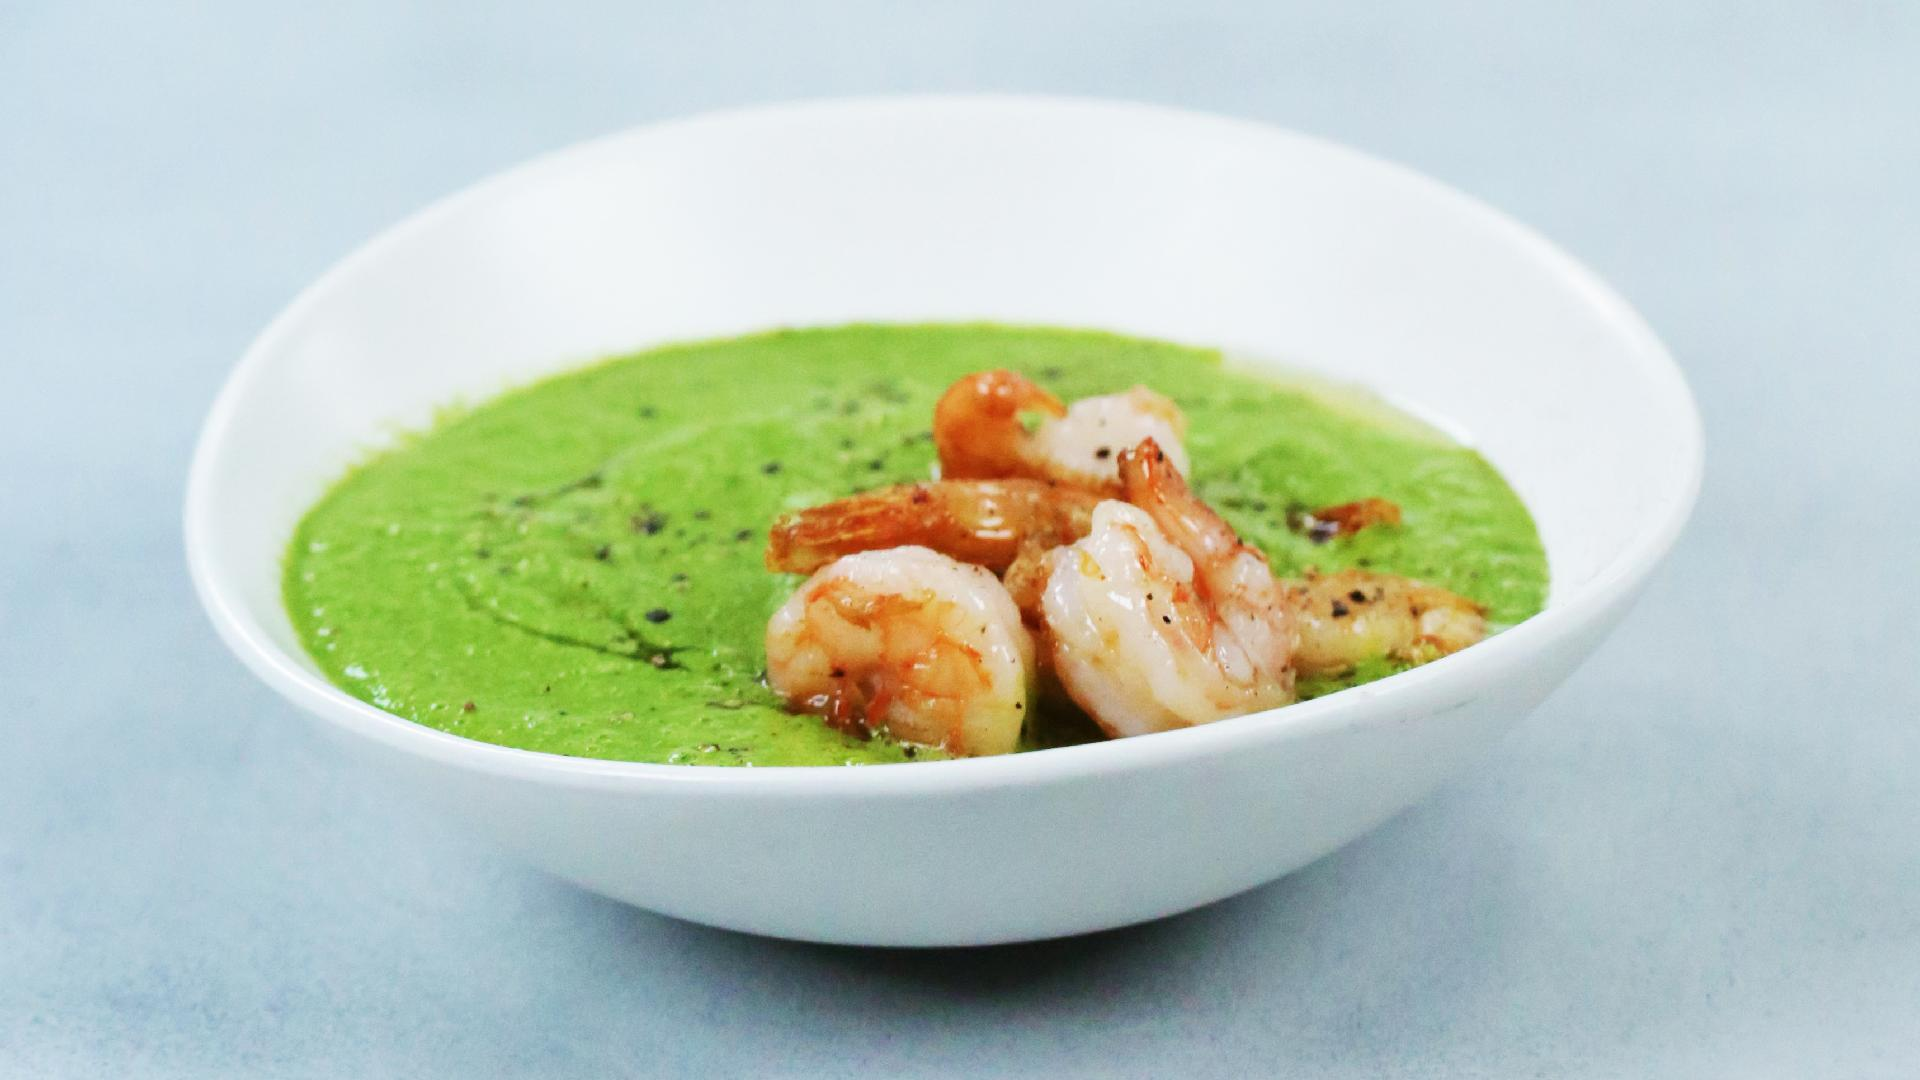 Green Gazpacho with Shrimp - Cooking Light